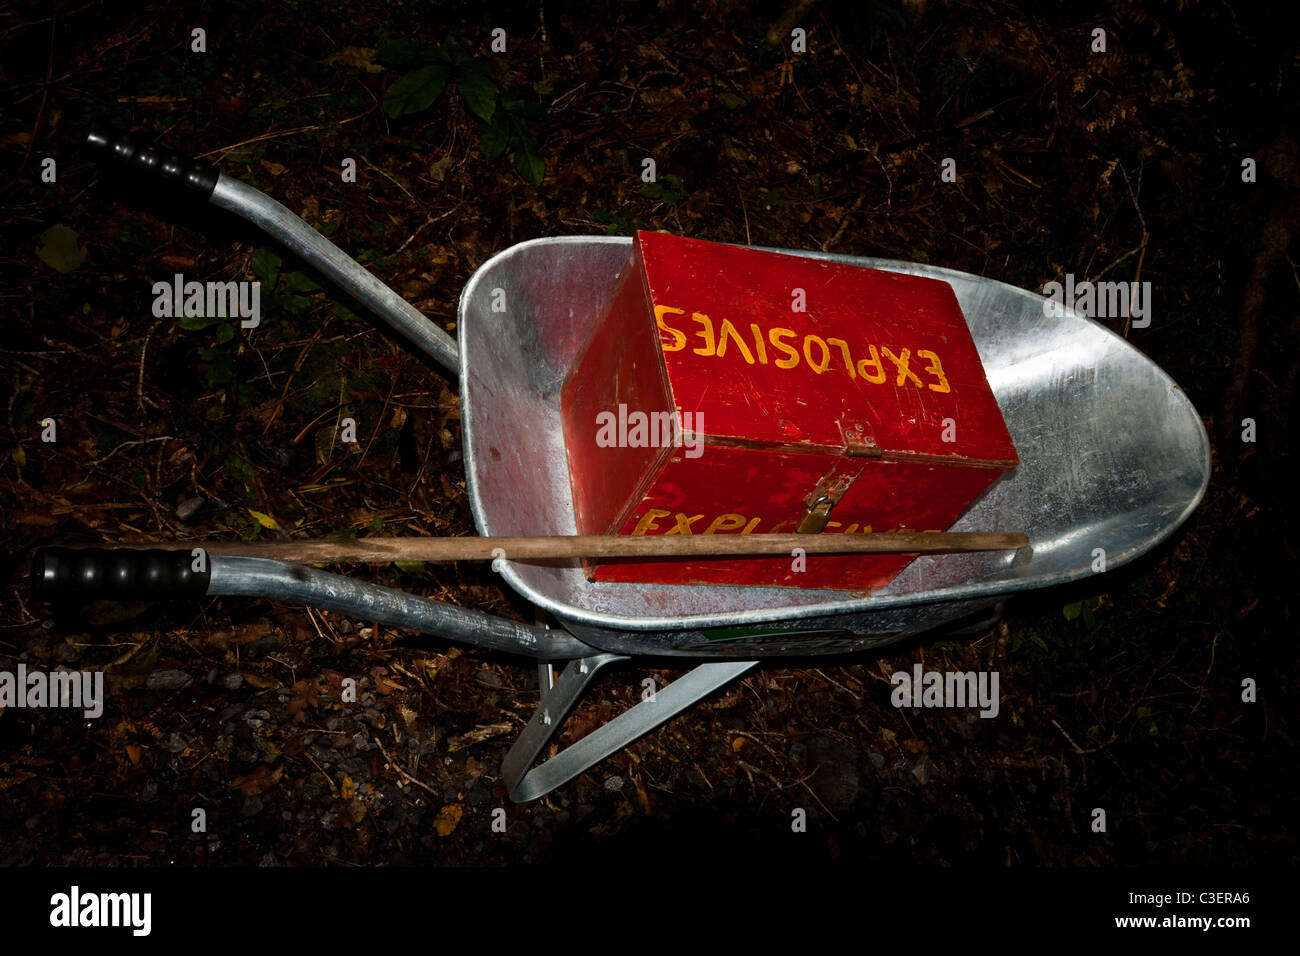 Barrow with red wooden box full of explosives in dark forest. - Stock Image